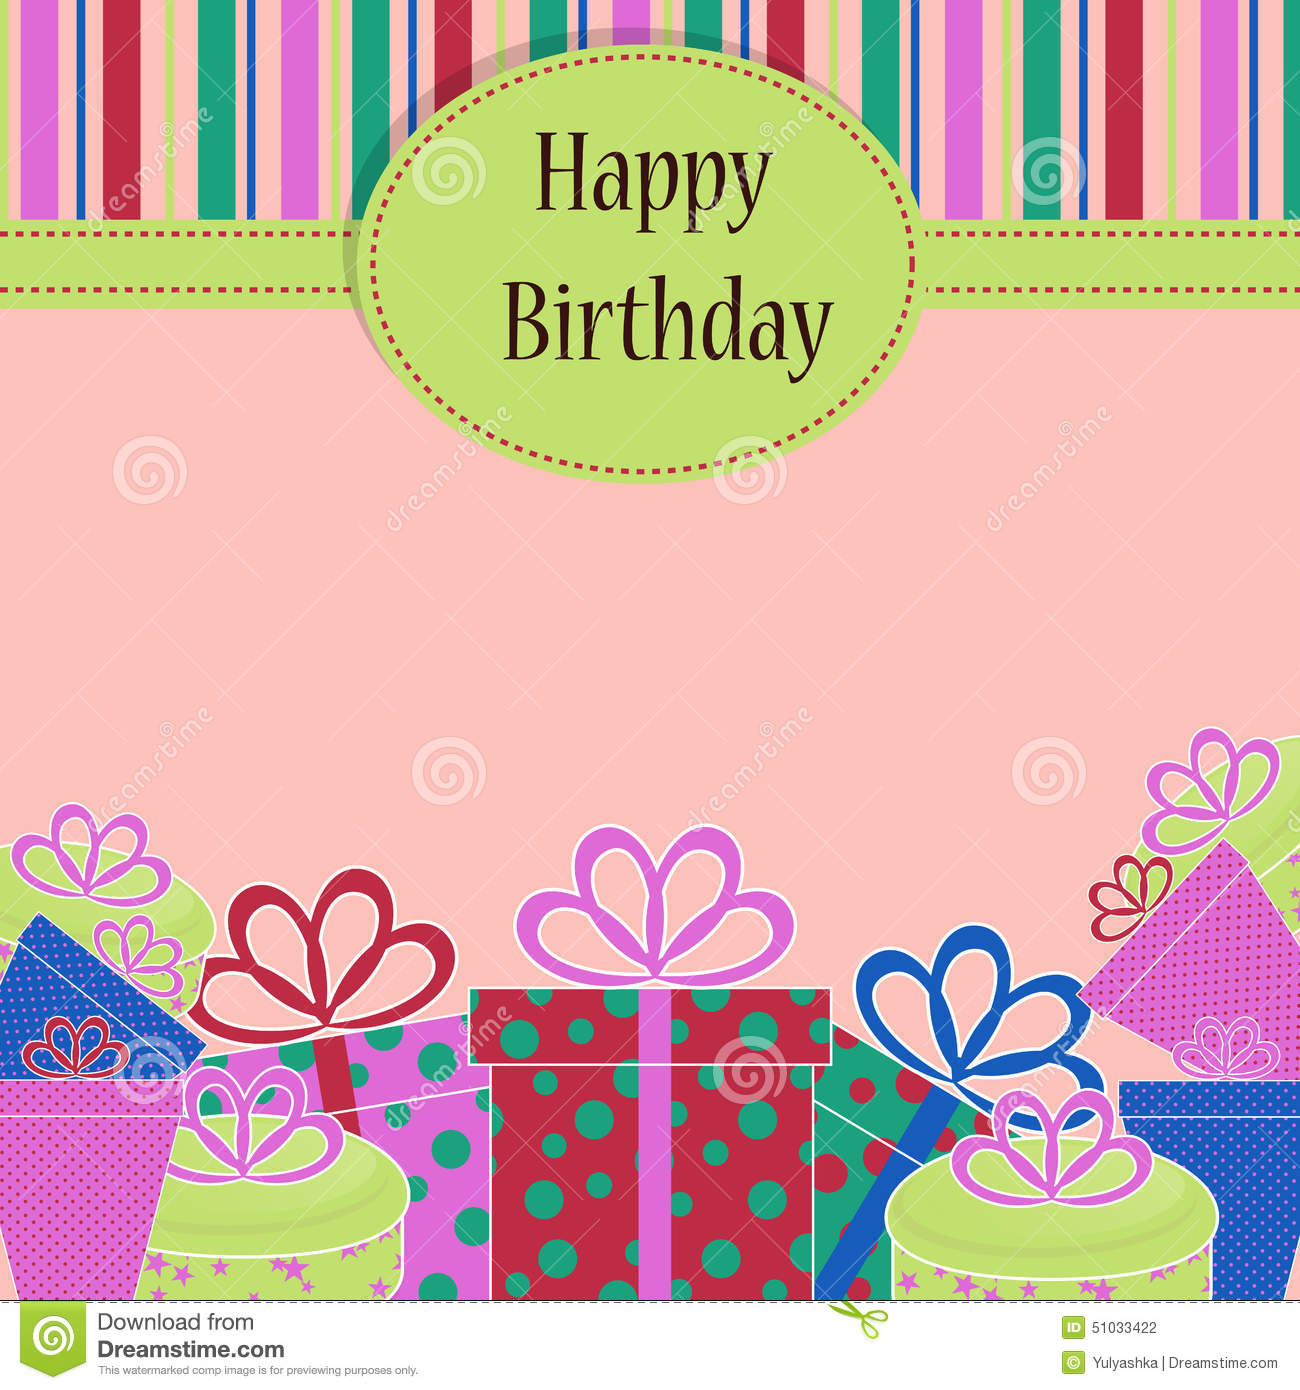 template birthday greeting card stock illustration illustration of